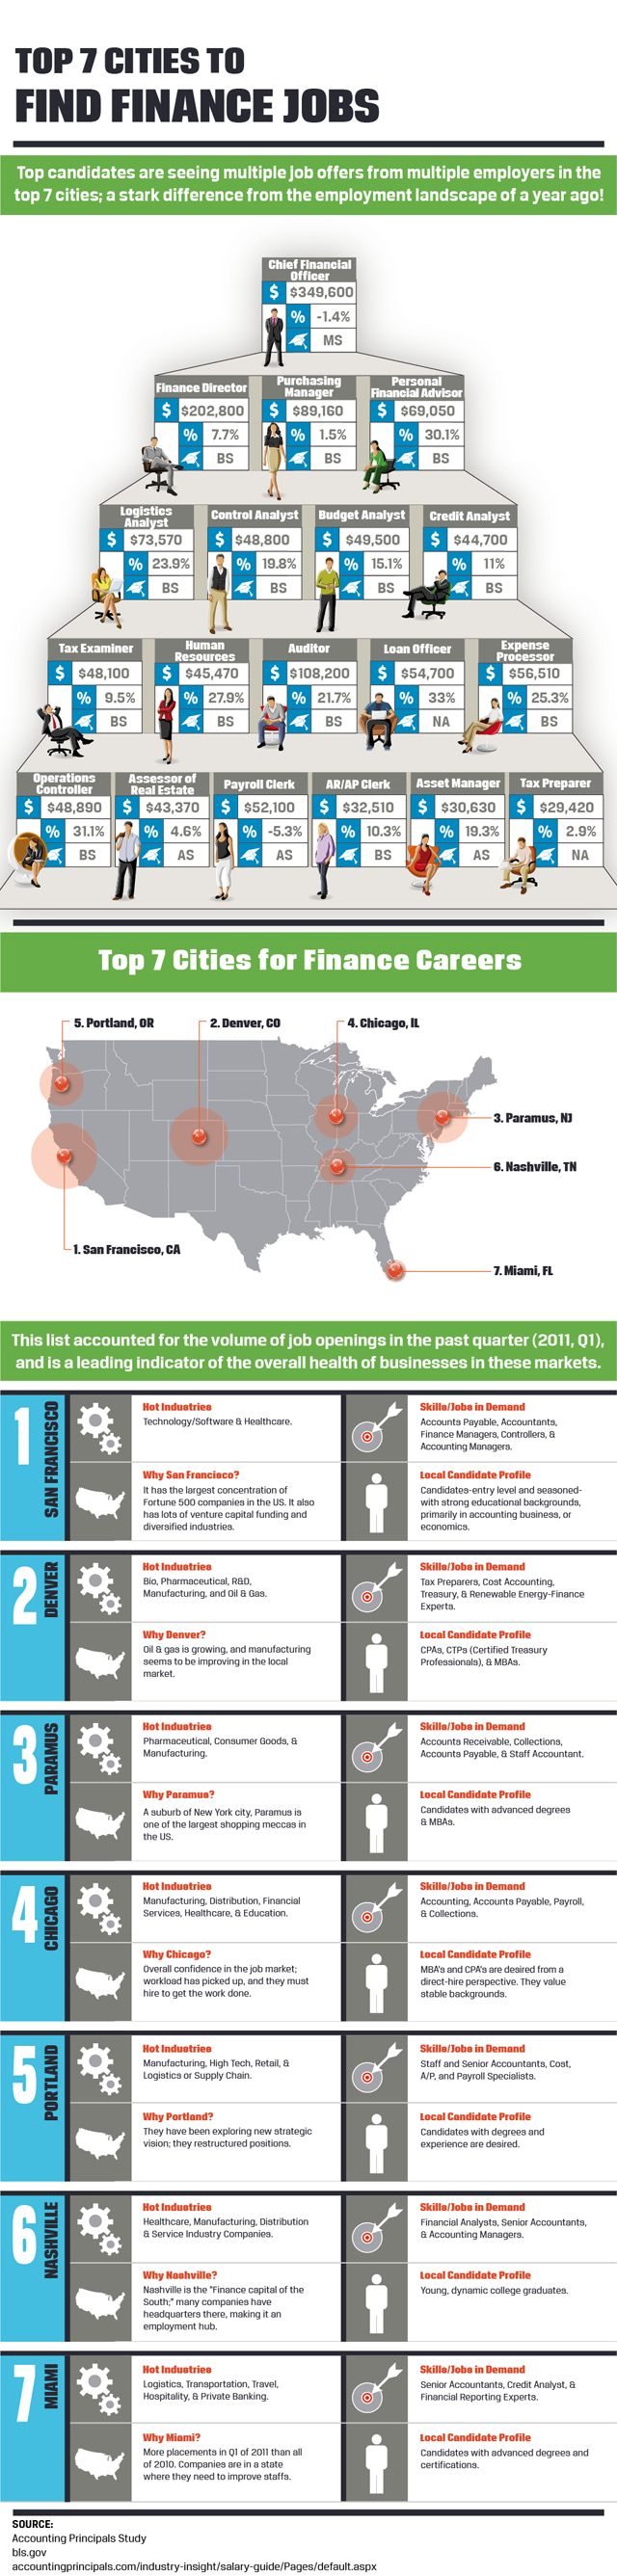 The infographic shows the research conducted by Accounting Principals on the most popular cities in United States to find finance jobs.  pined even though I ail never move.